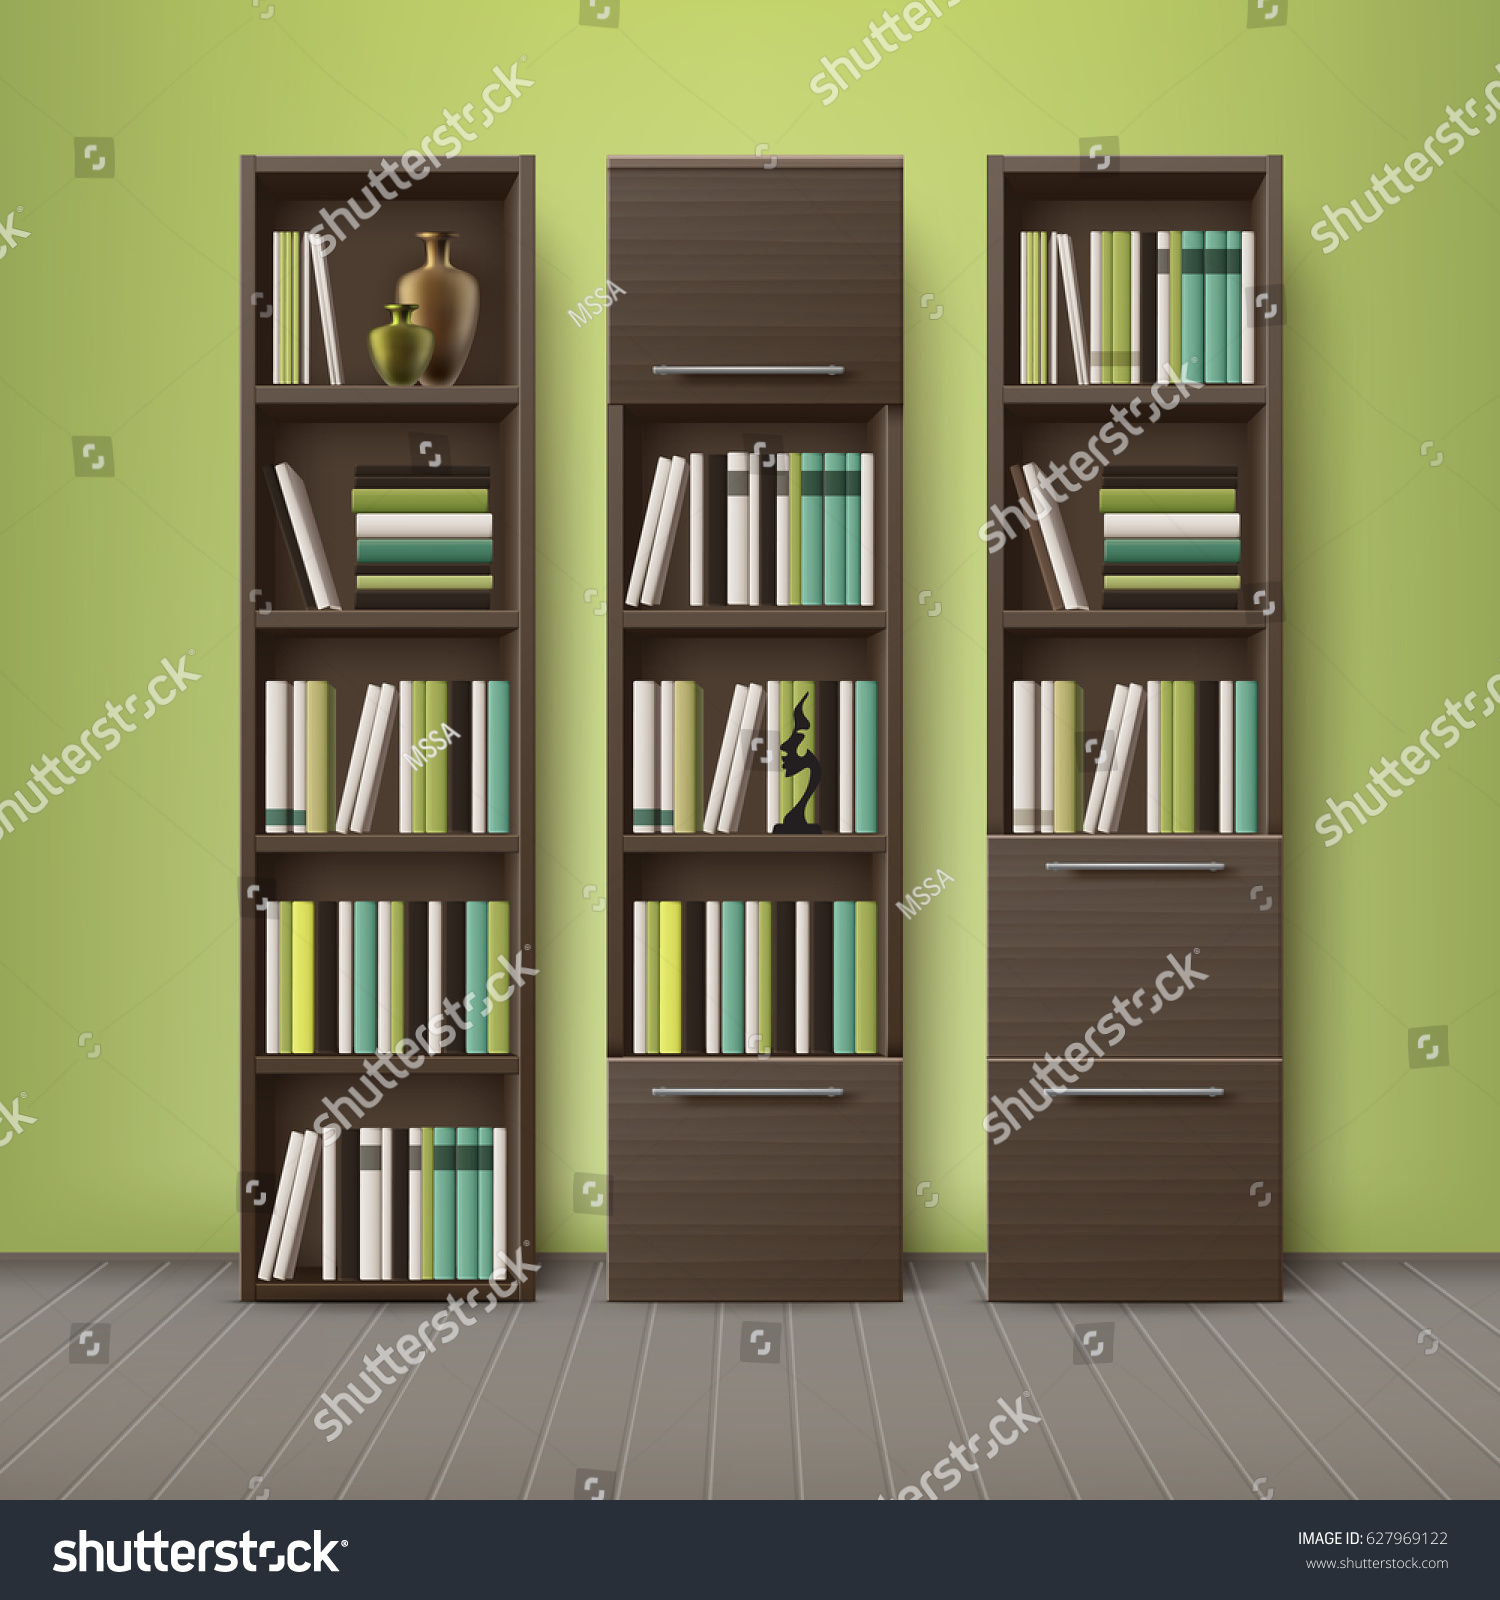 vector brown wooden bookcases full of different books and decorations standing on floor with - Wooden Bookcases